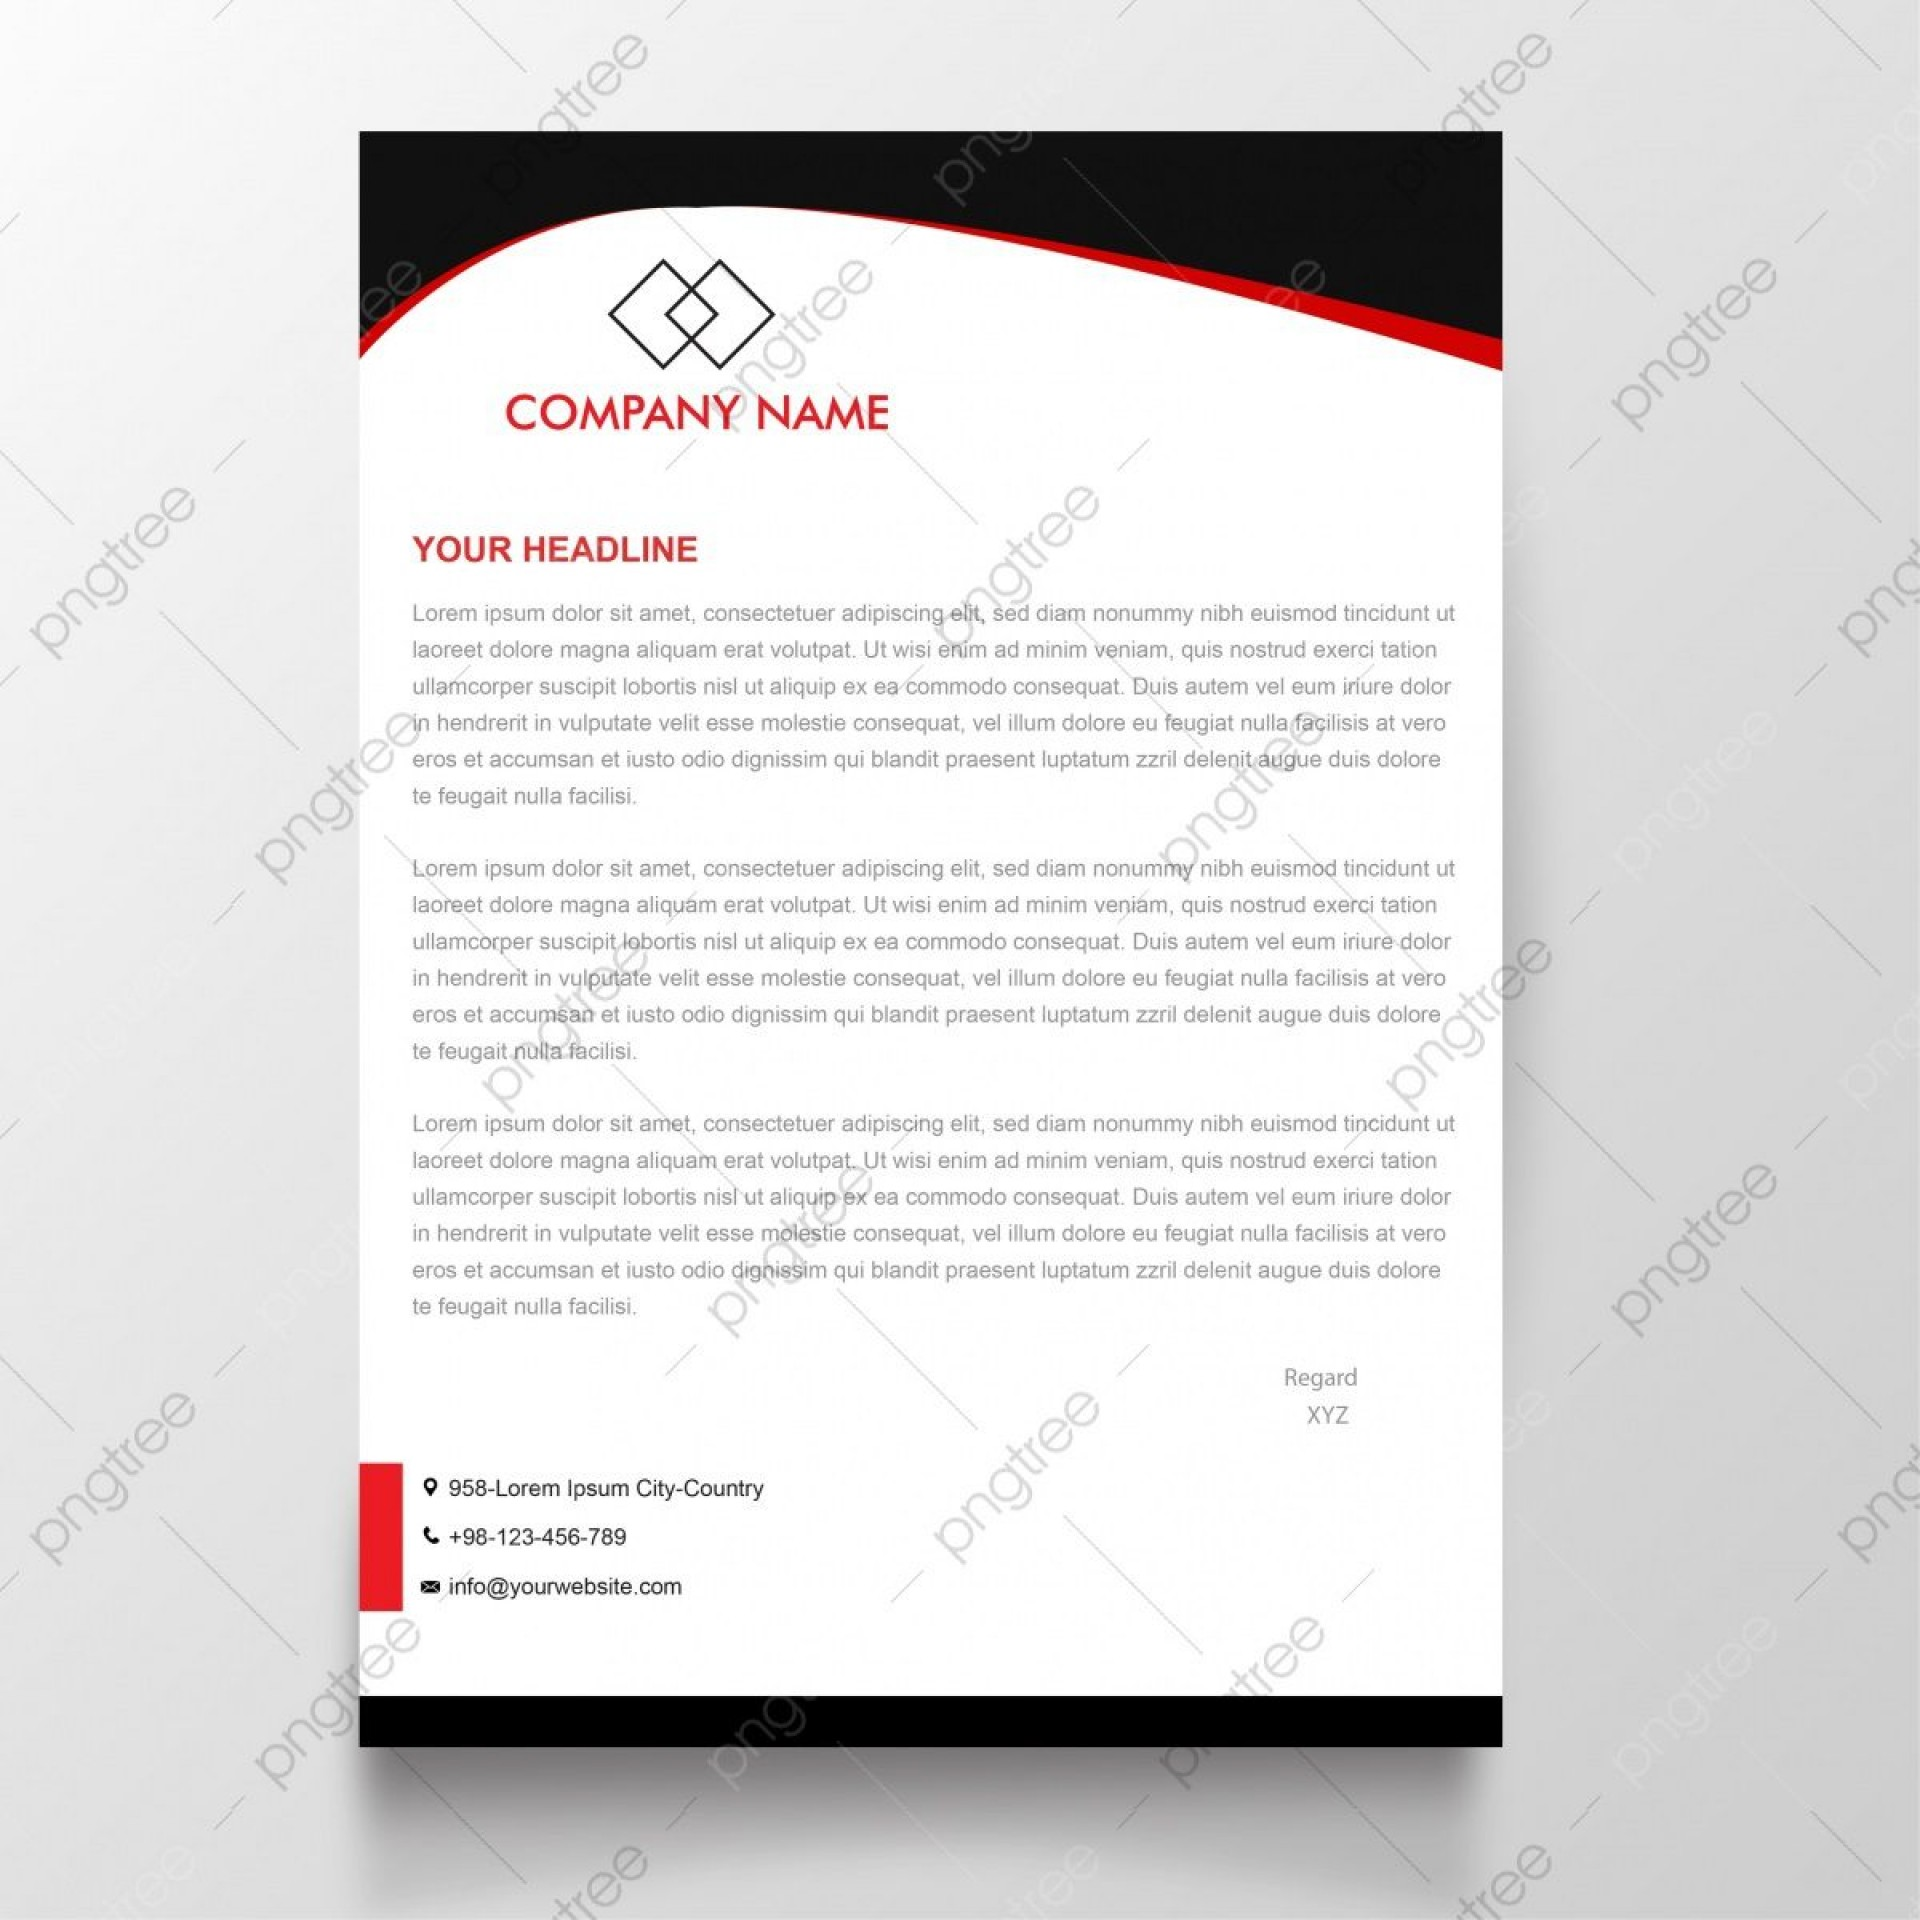 009 Remarkable Letterhead Template Free Download Doc High Def  Company Format Doctor1920